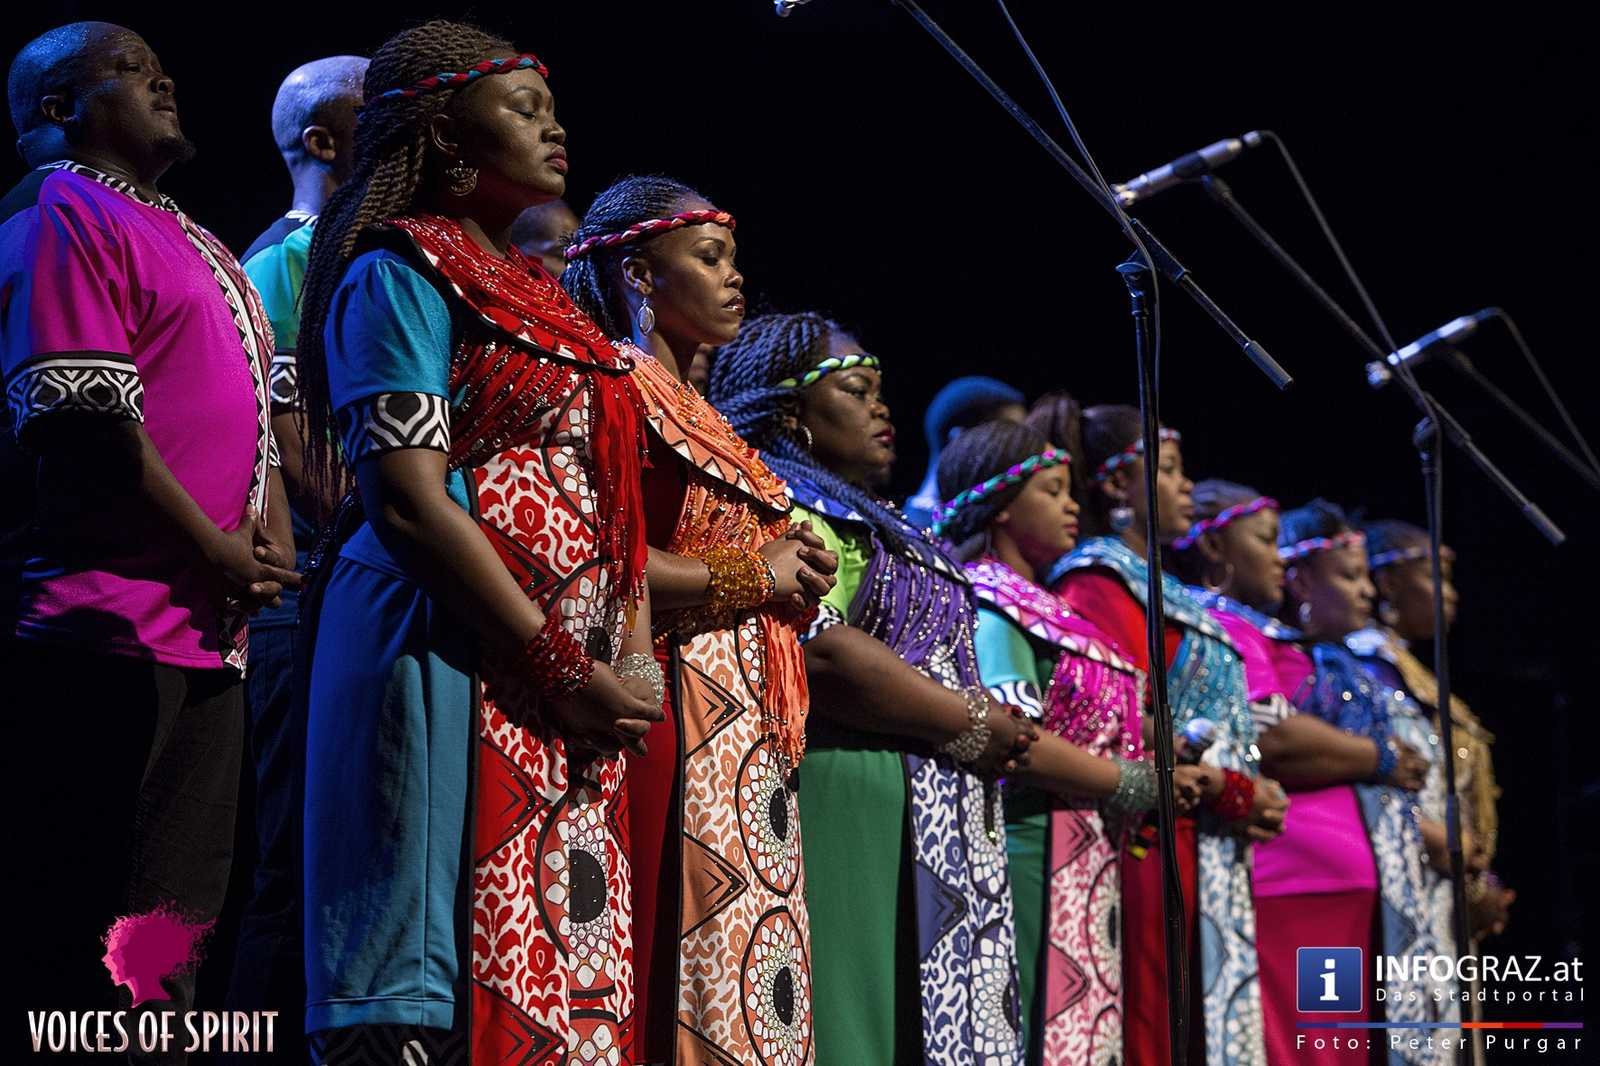 soweto gospel choir internationales chorfestival statdthalle graz voices of spirit eroeffnung festivals 2016 103